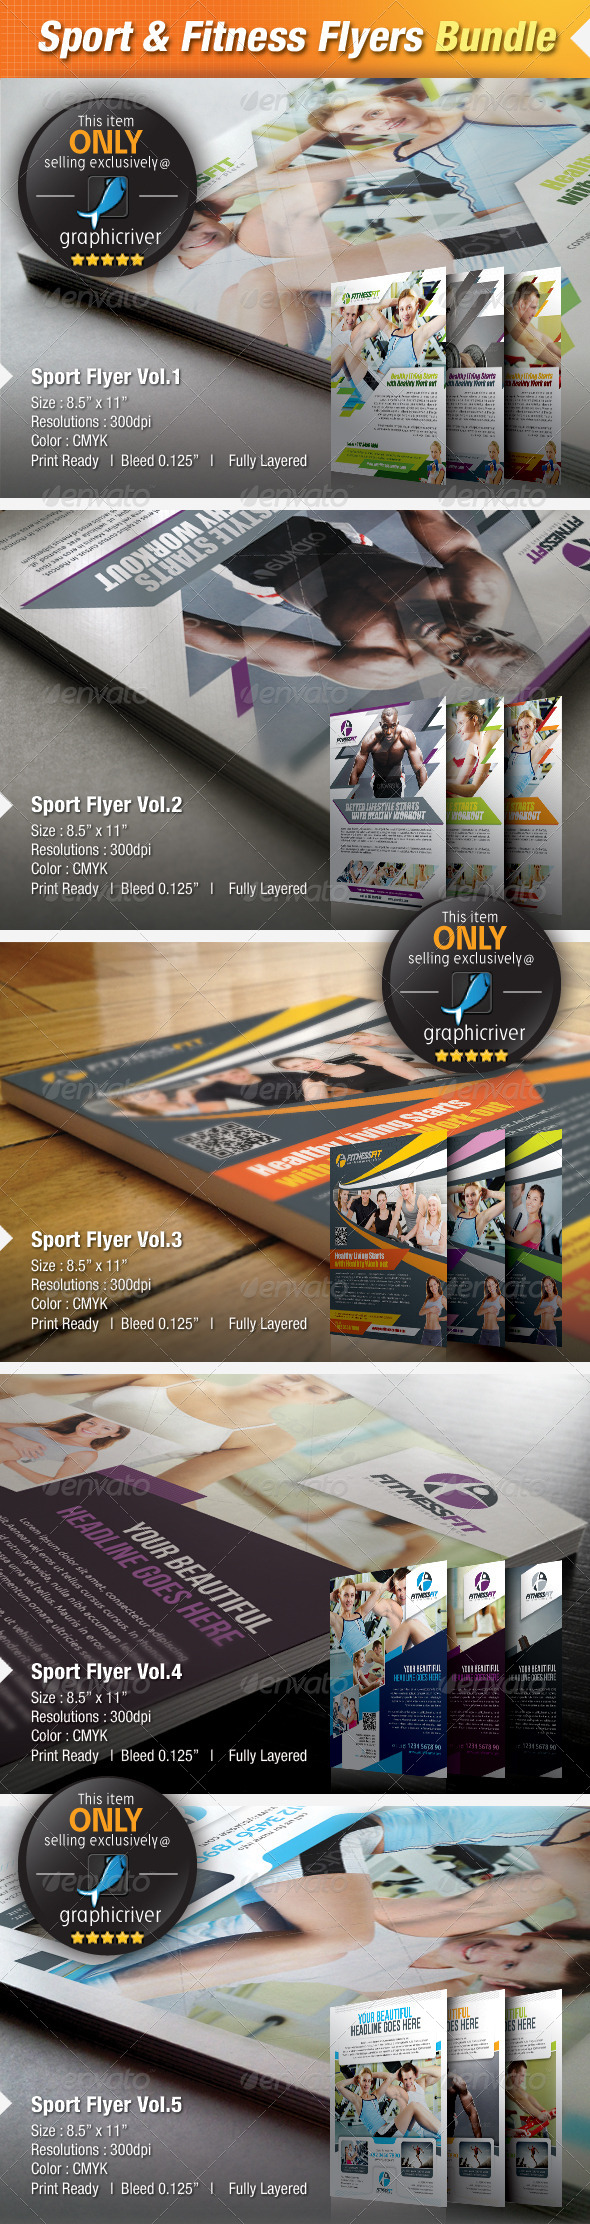 GraphicRiver 5-in-1 Sport & Fitness Flyers Bundle 4844901